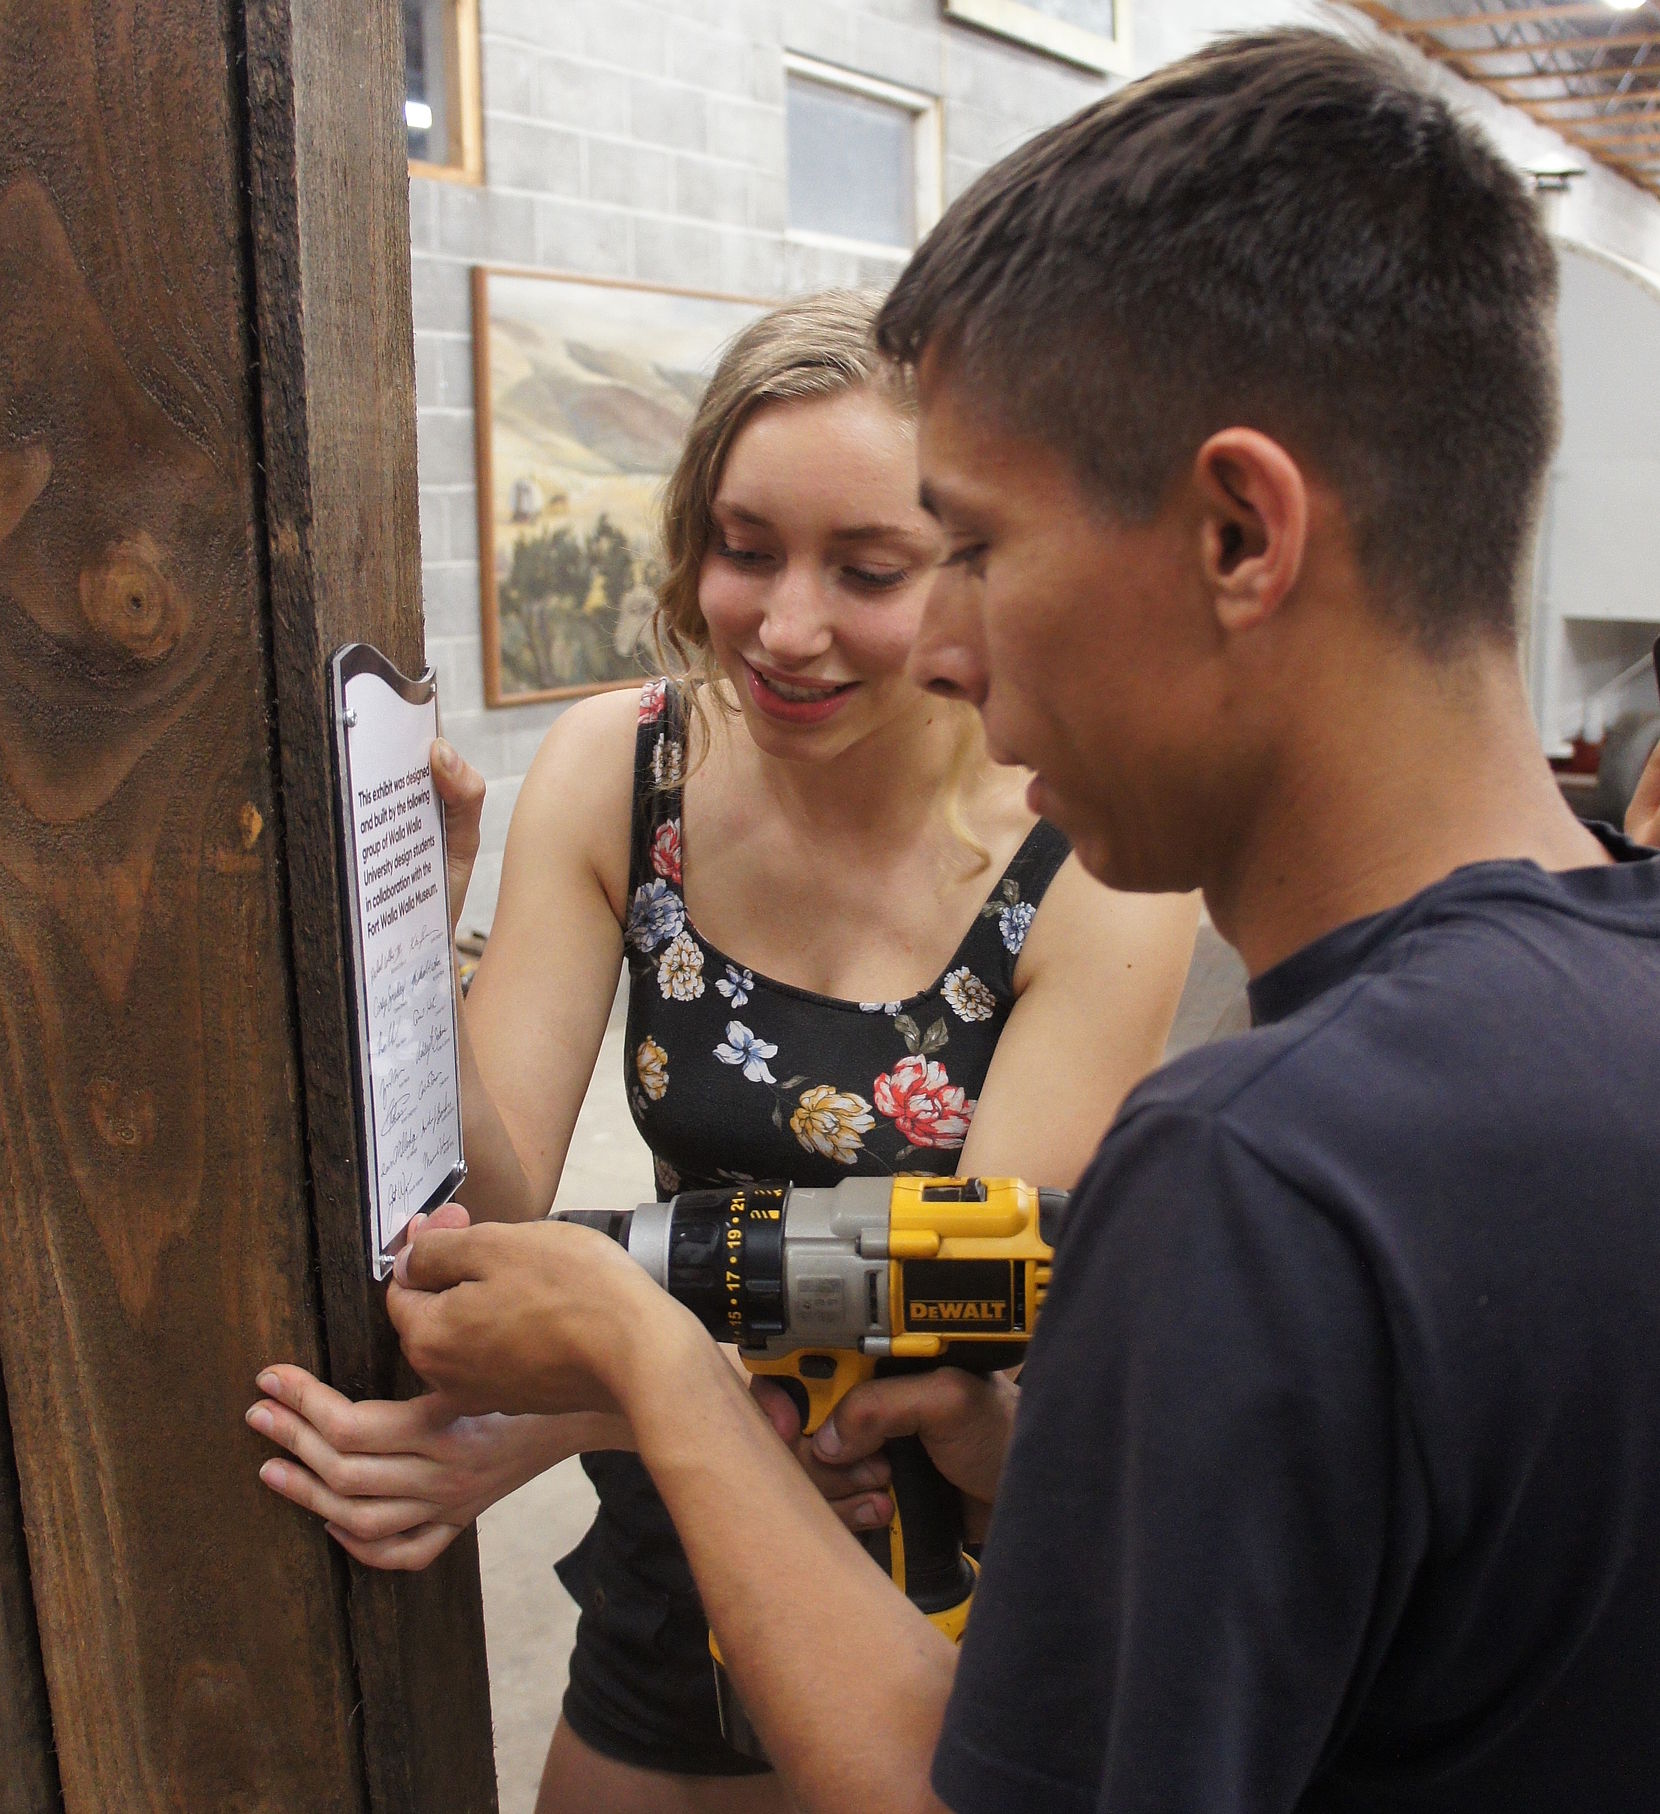 Student uses a screwdriver to install a sign on the new exhibit while another student holds the sign.